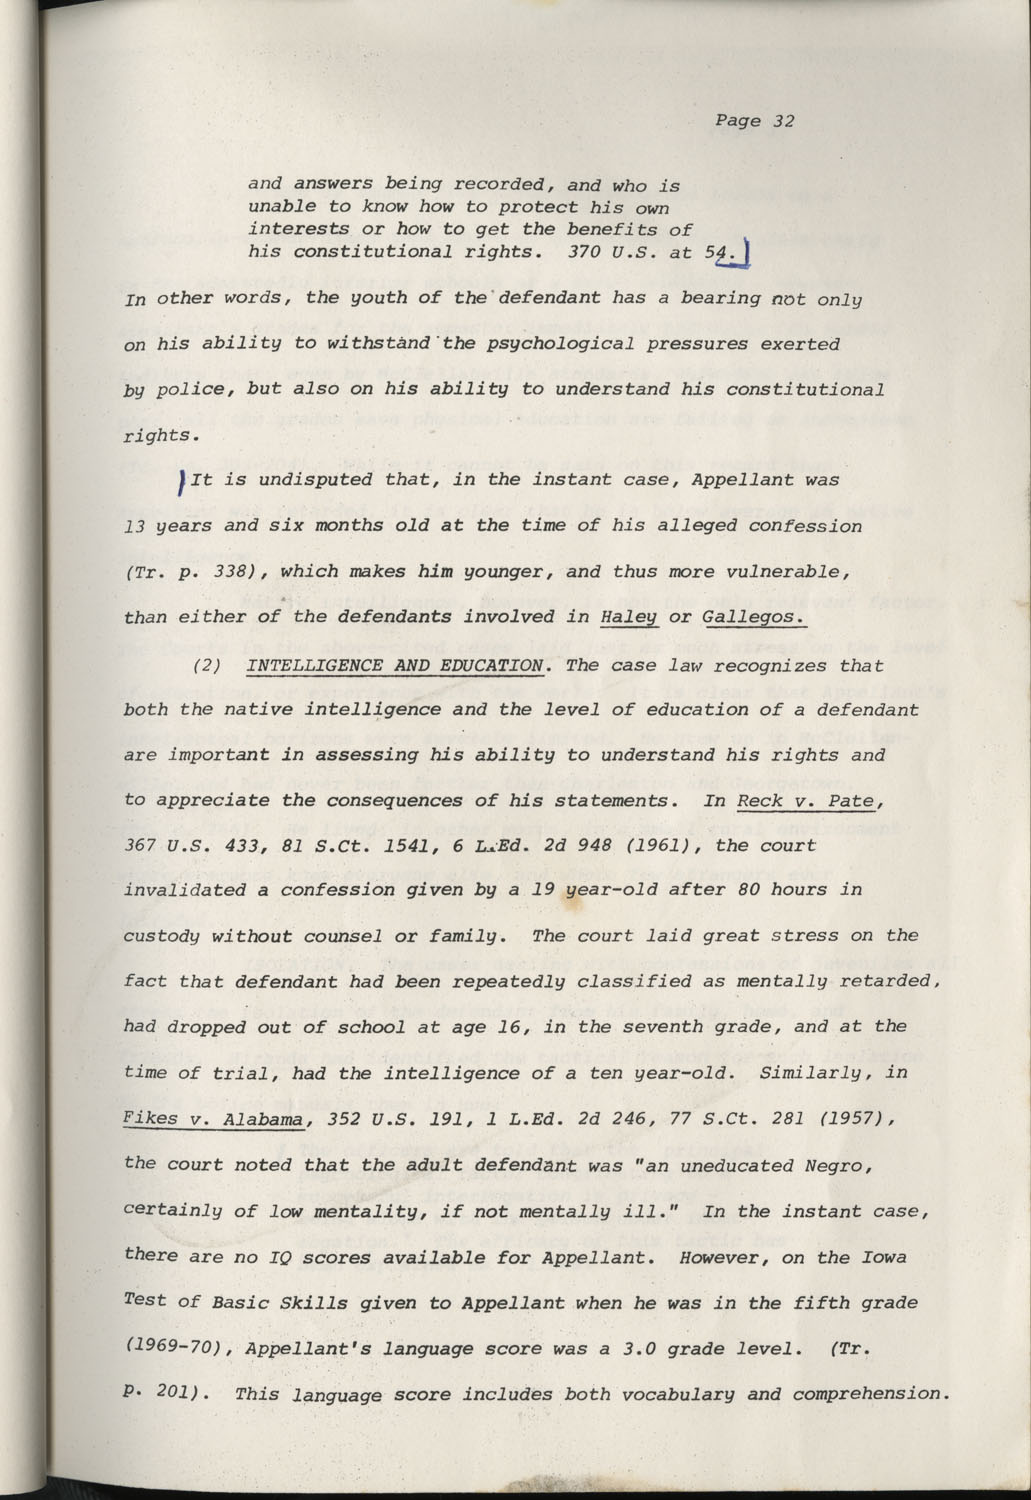 State of South Carolina vs. Robert Lee Smith, Brief of Appellant, Page 32